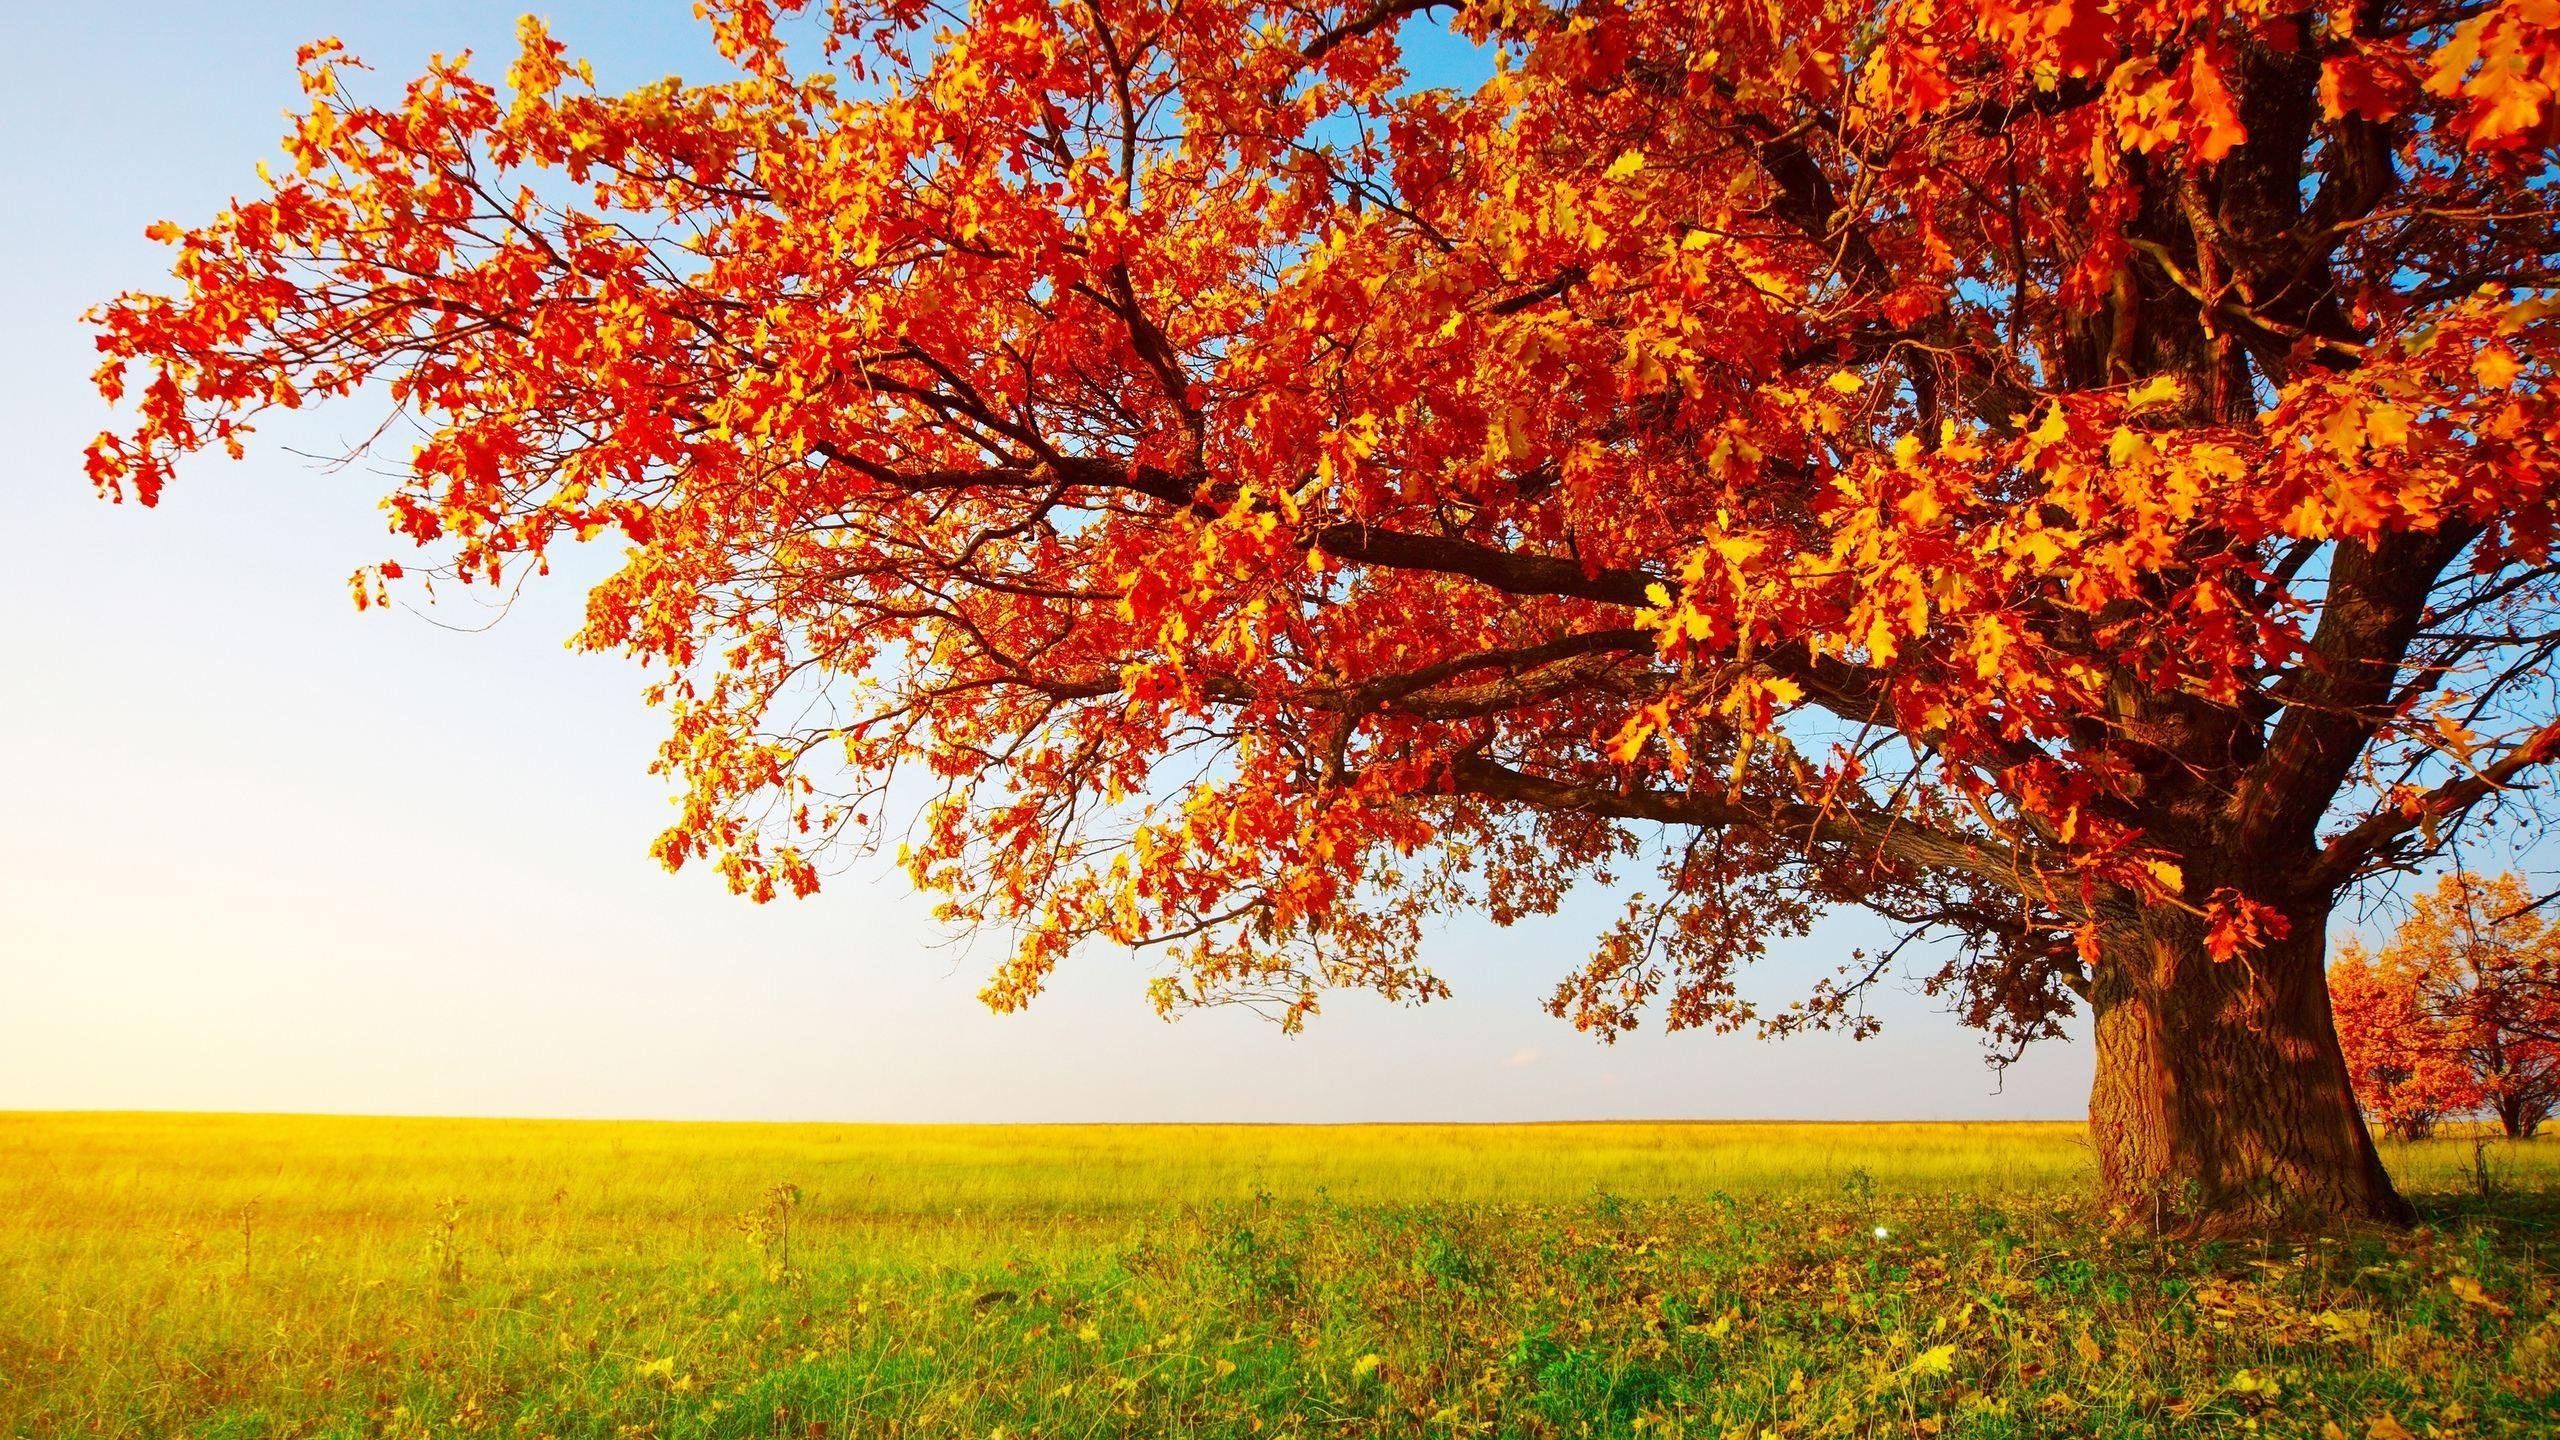 Big Tree In The Middle Of Autumn Season Hd Wallpaper